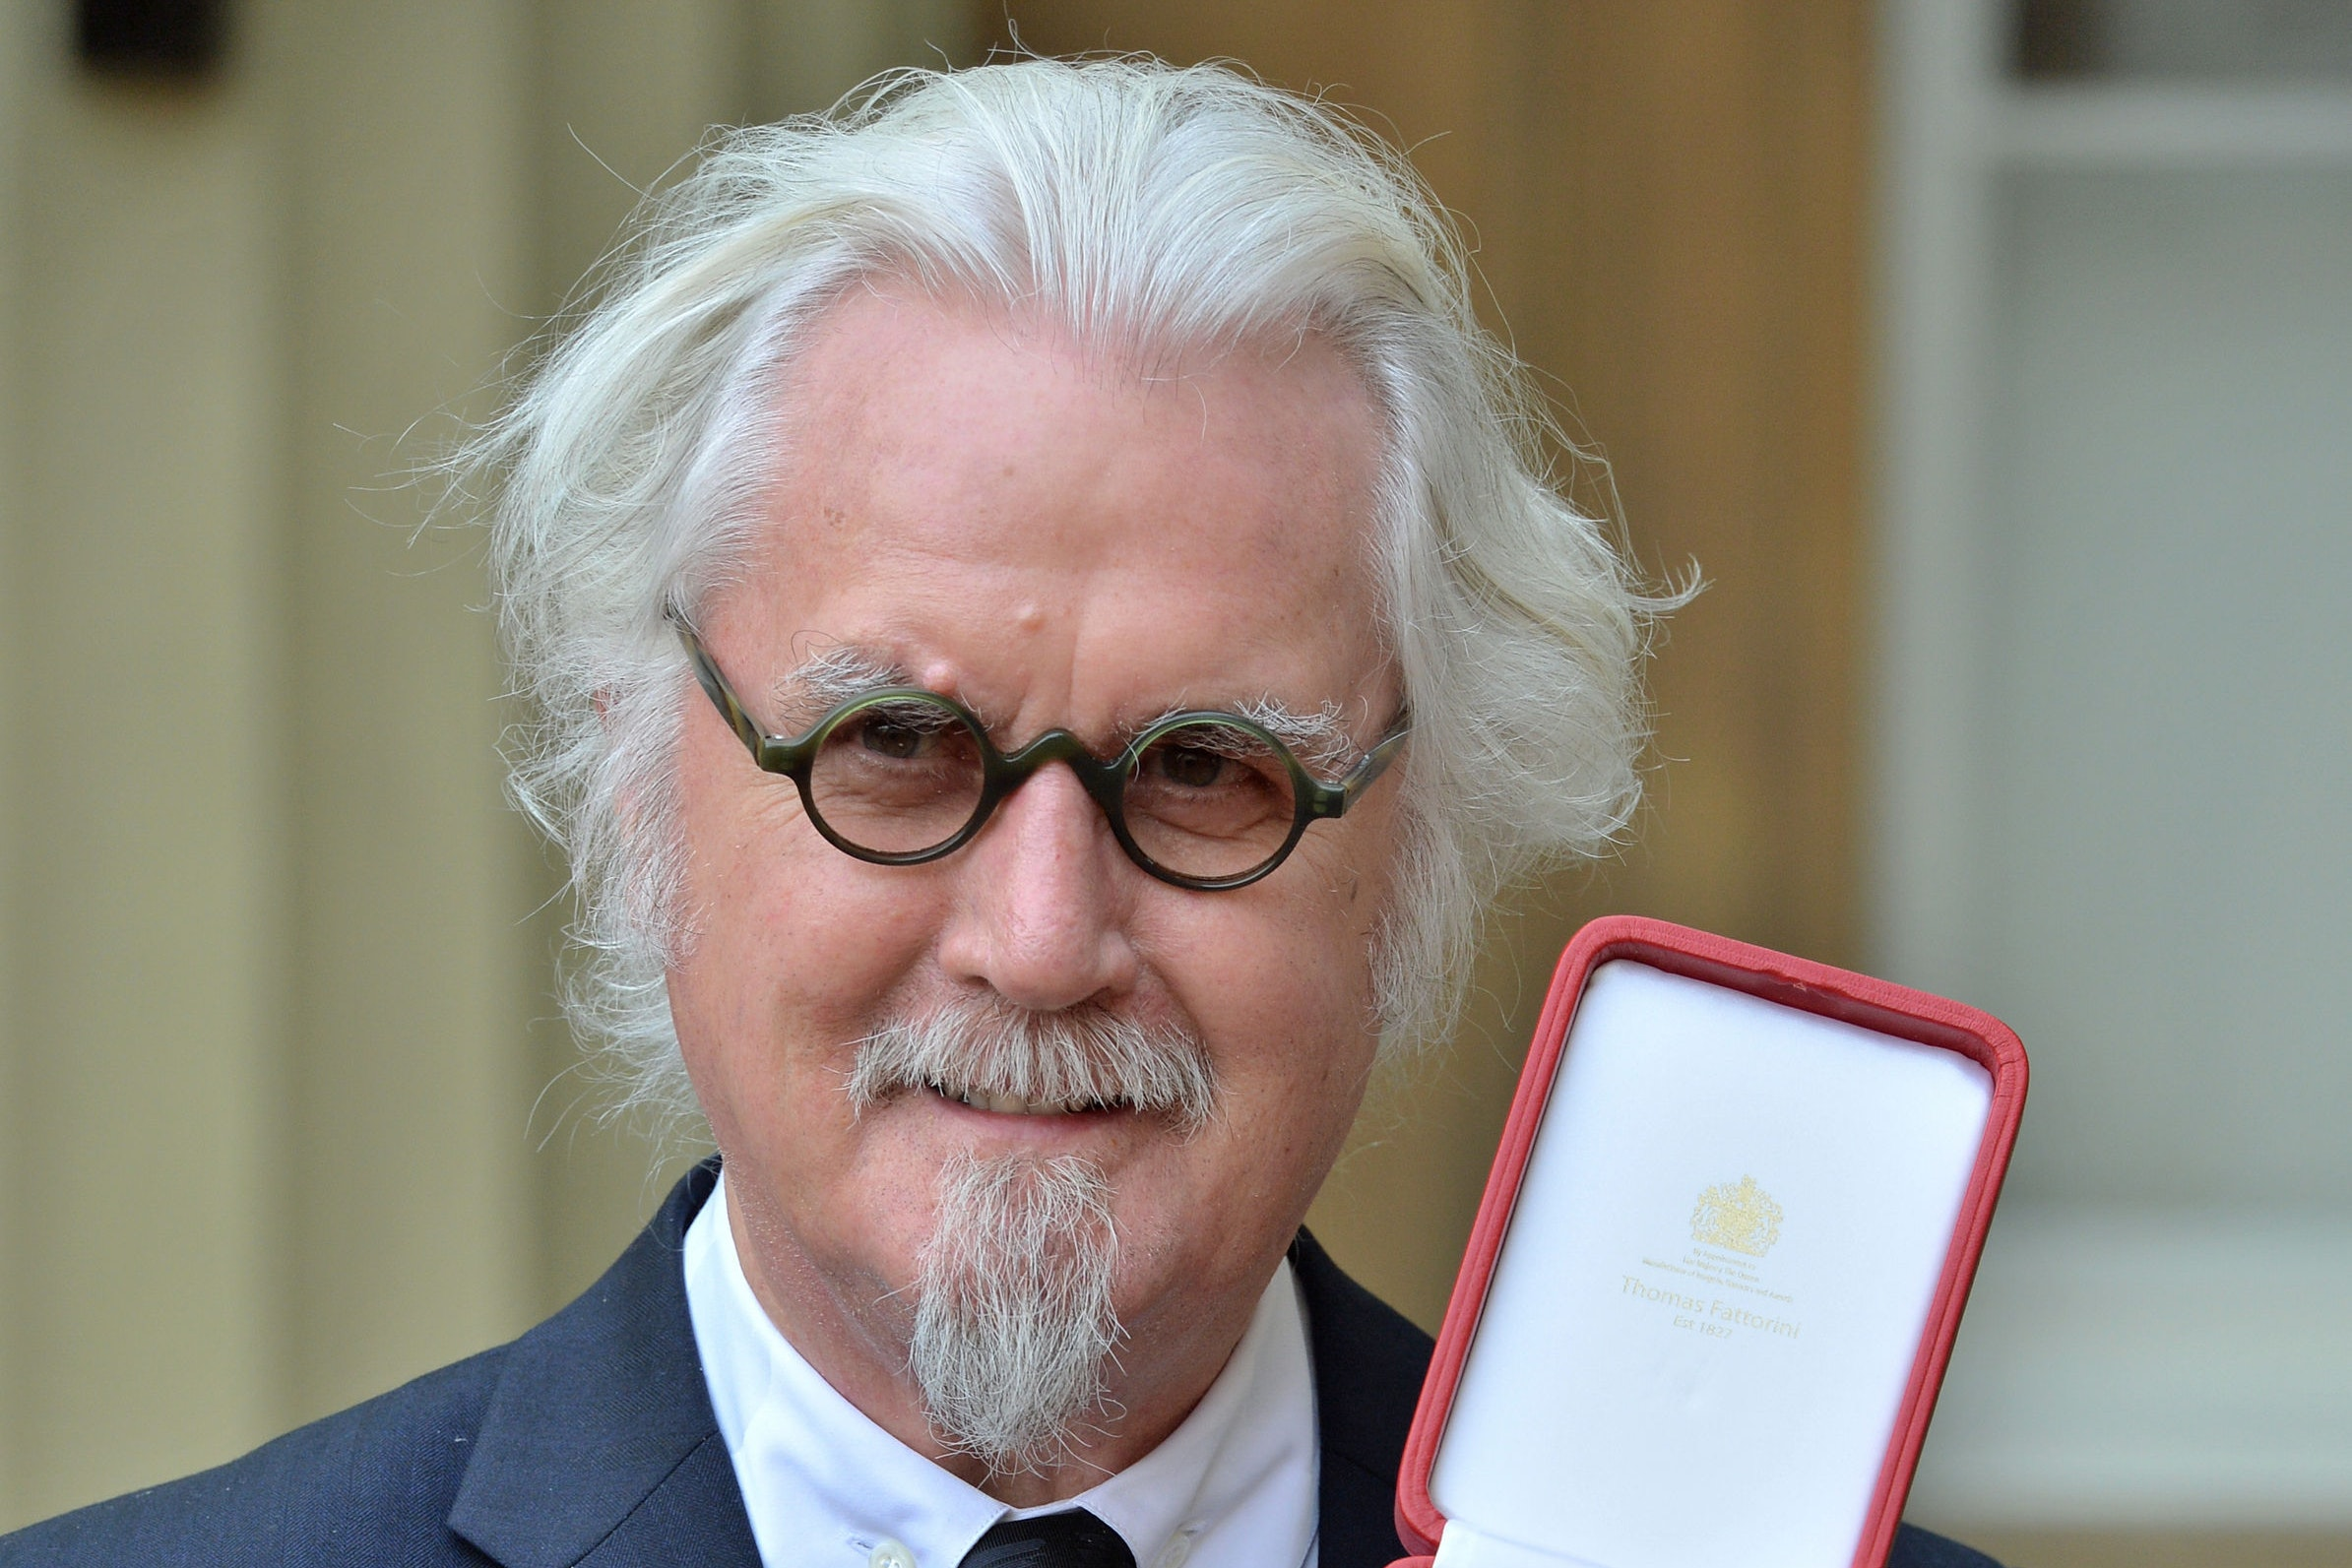 Billy Connolly 'may do another gig' but admits he is 'not ready' yet